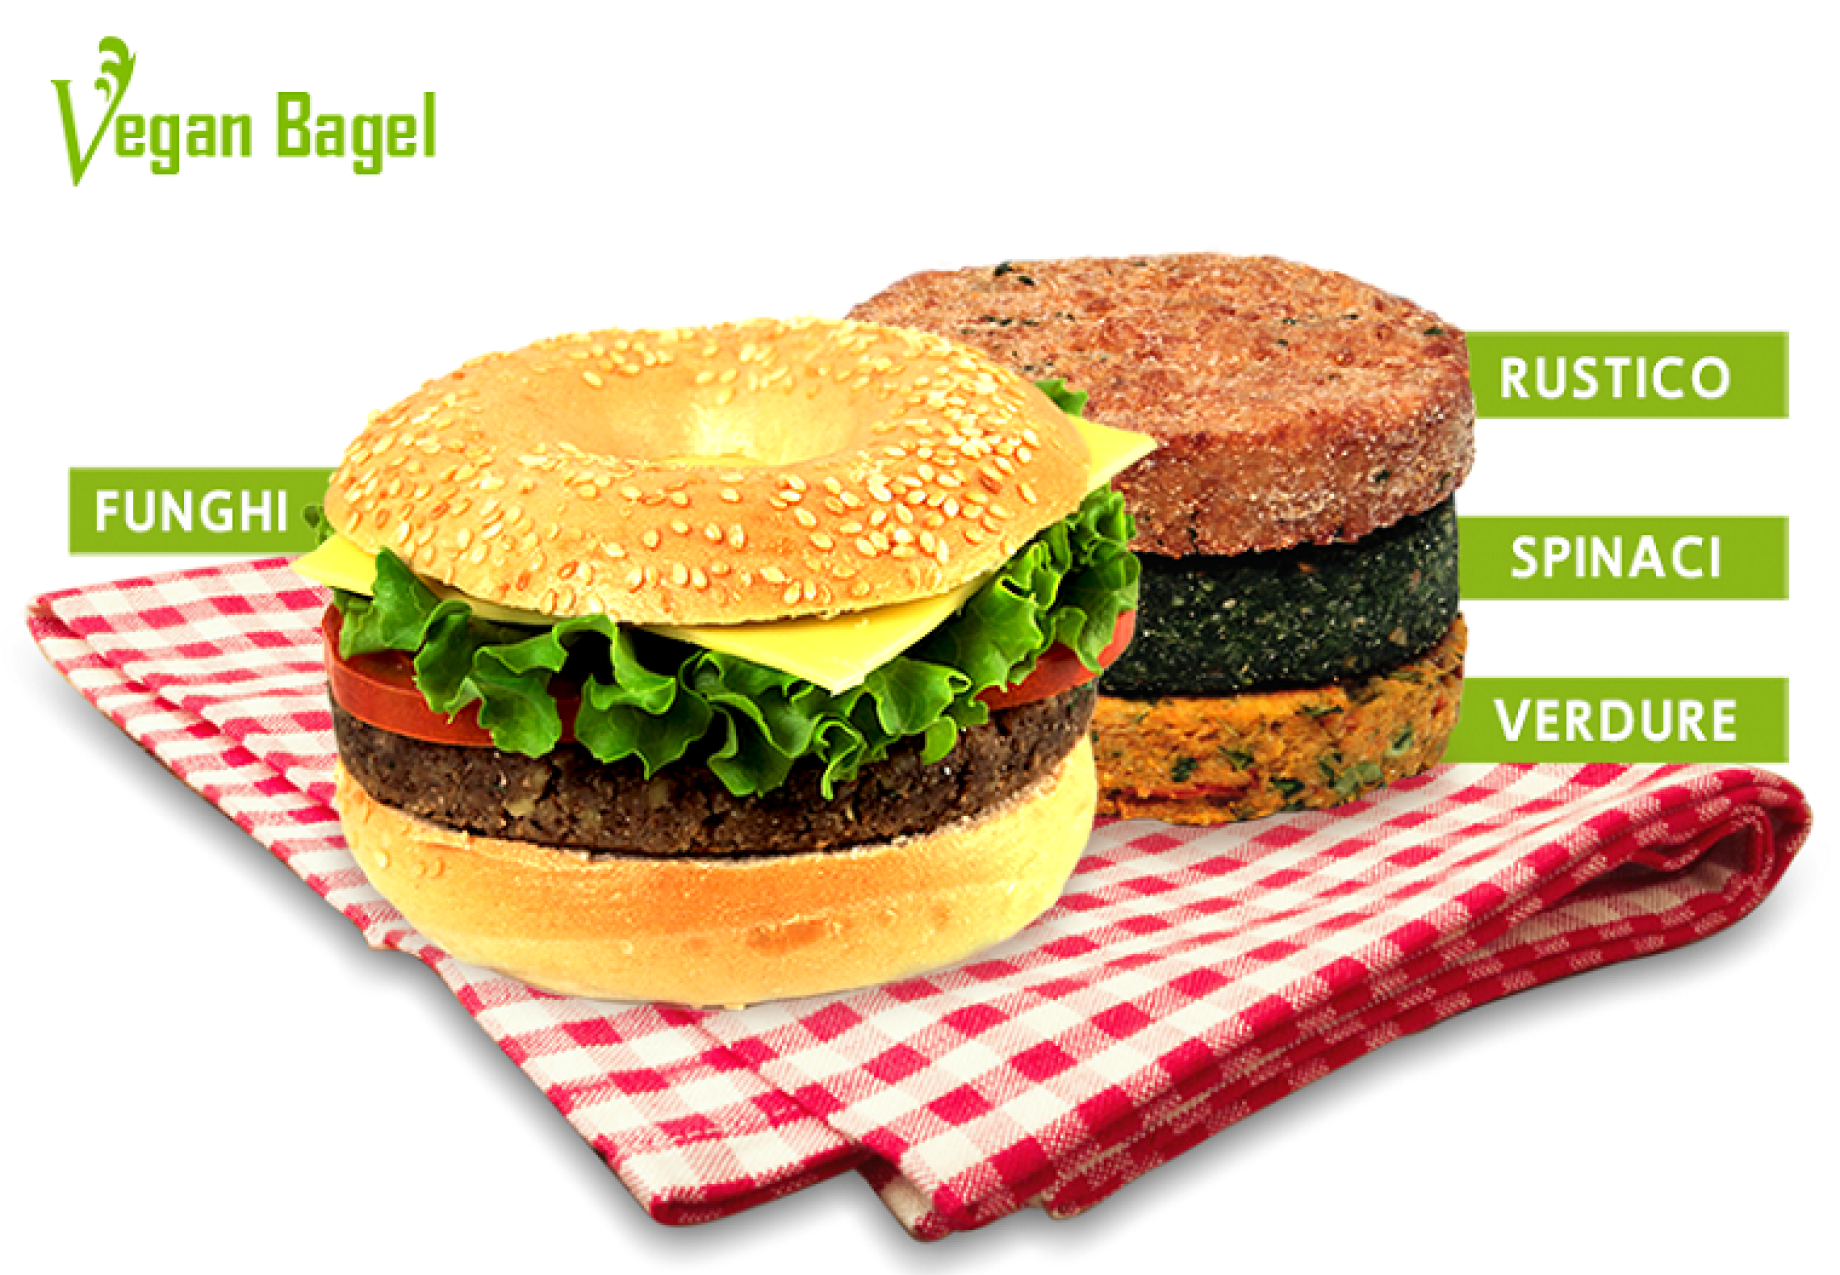 Vegan_Bagel_8002_rid